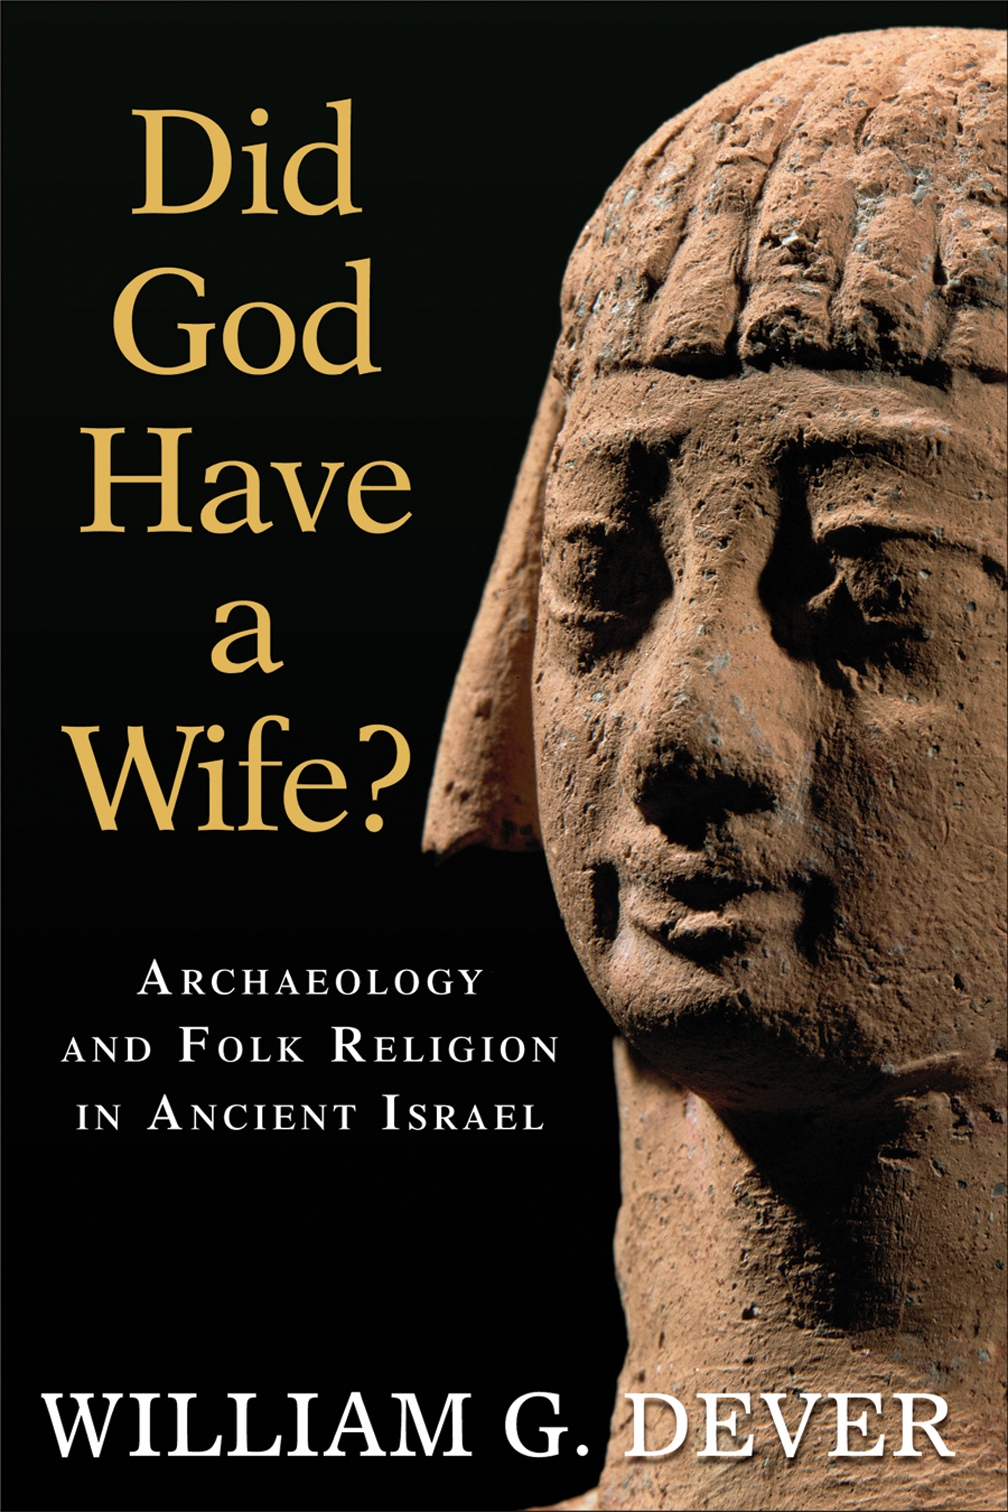 Did God Have a Wife? - William G Dever : Eerdmans